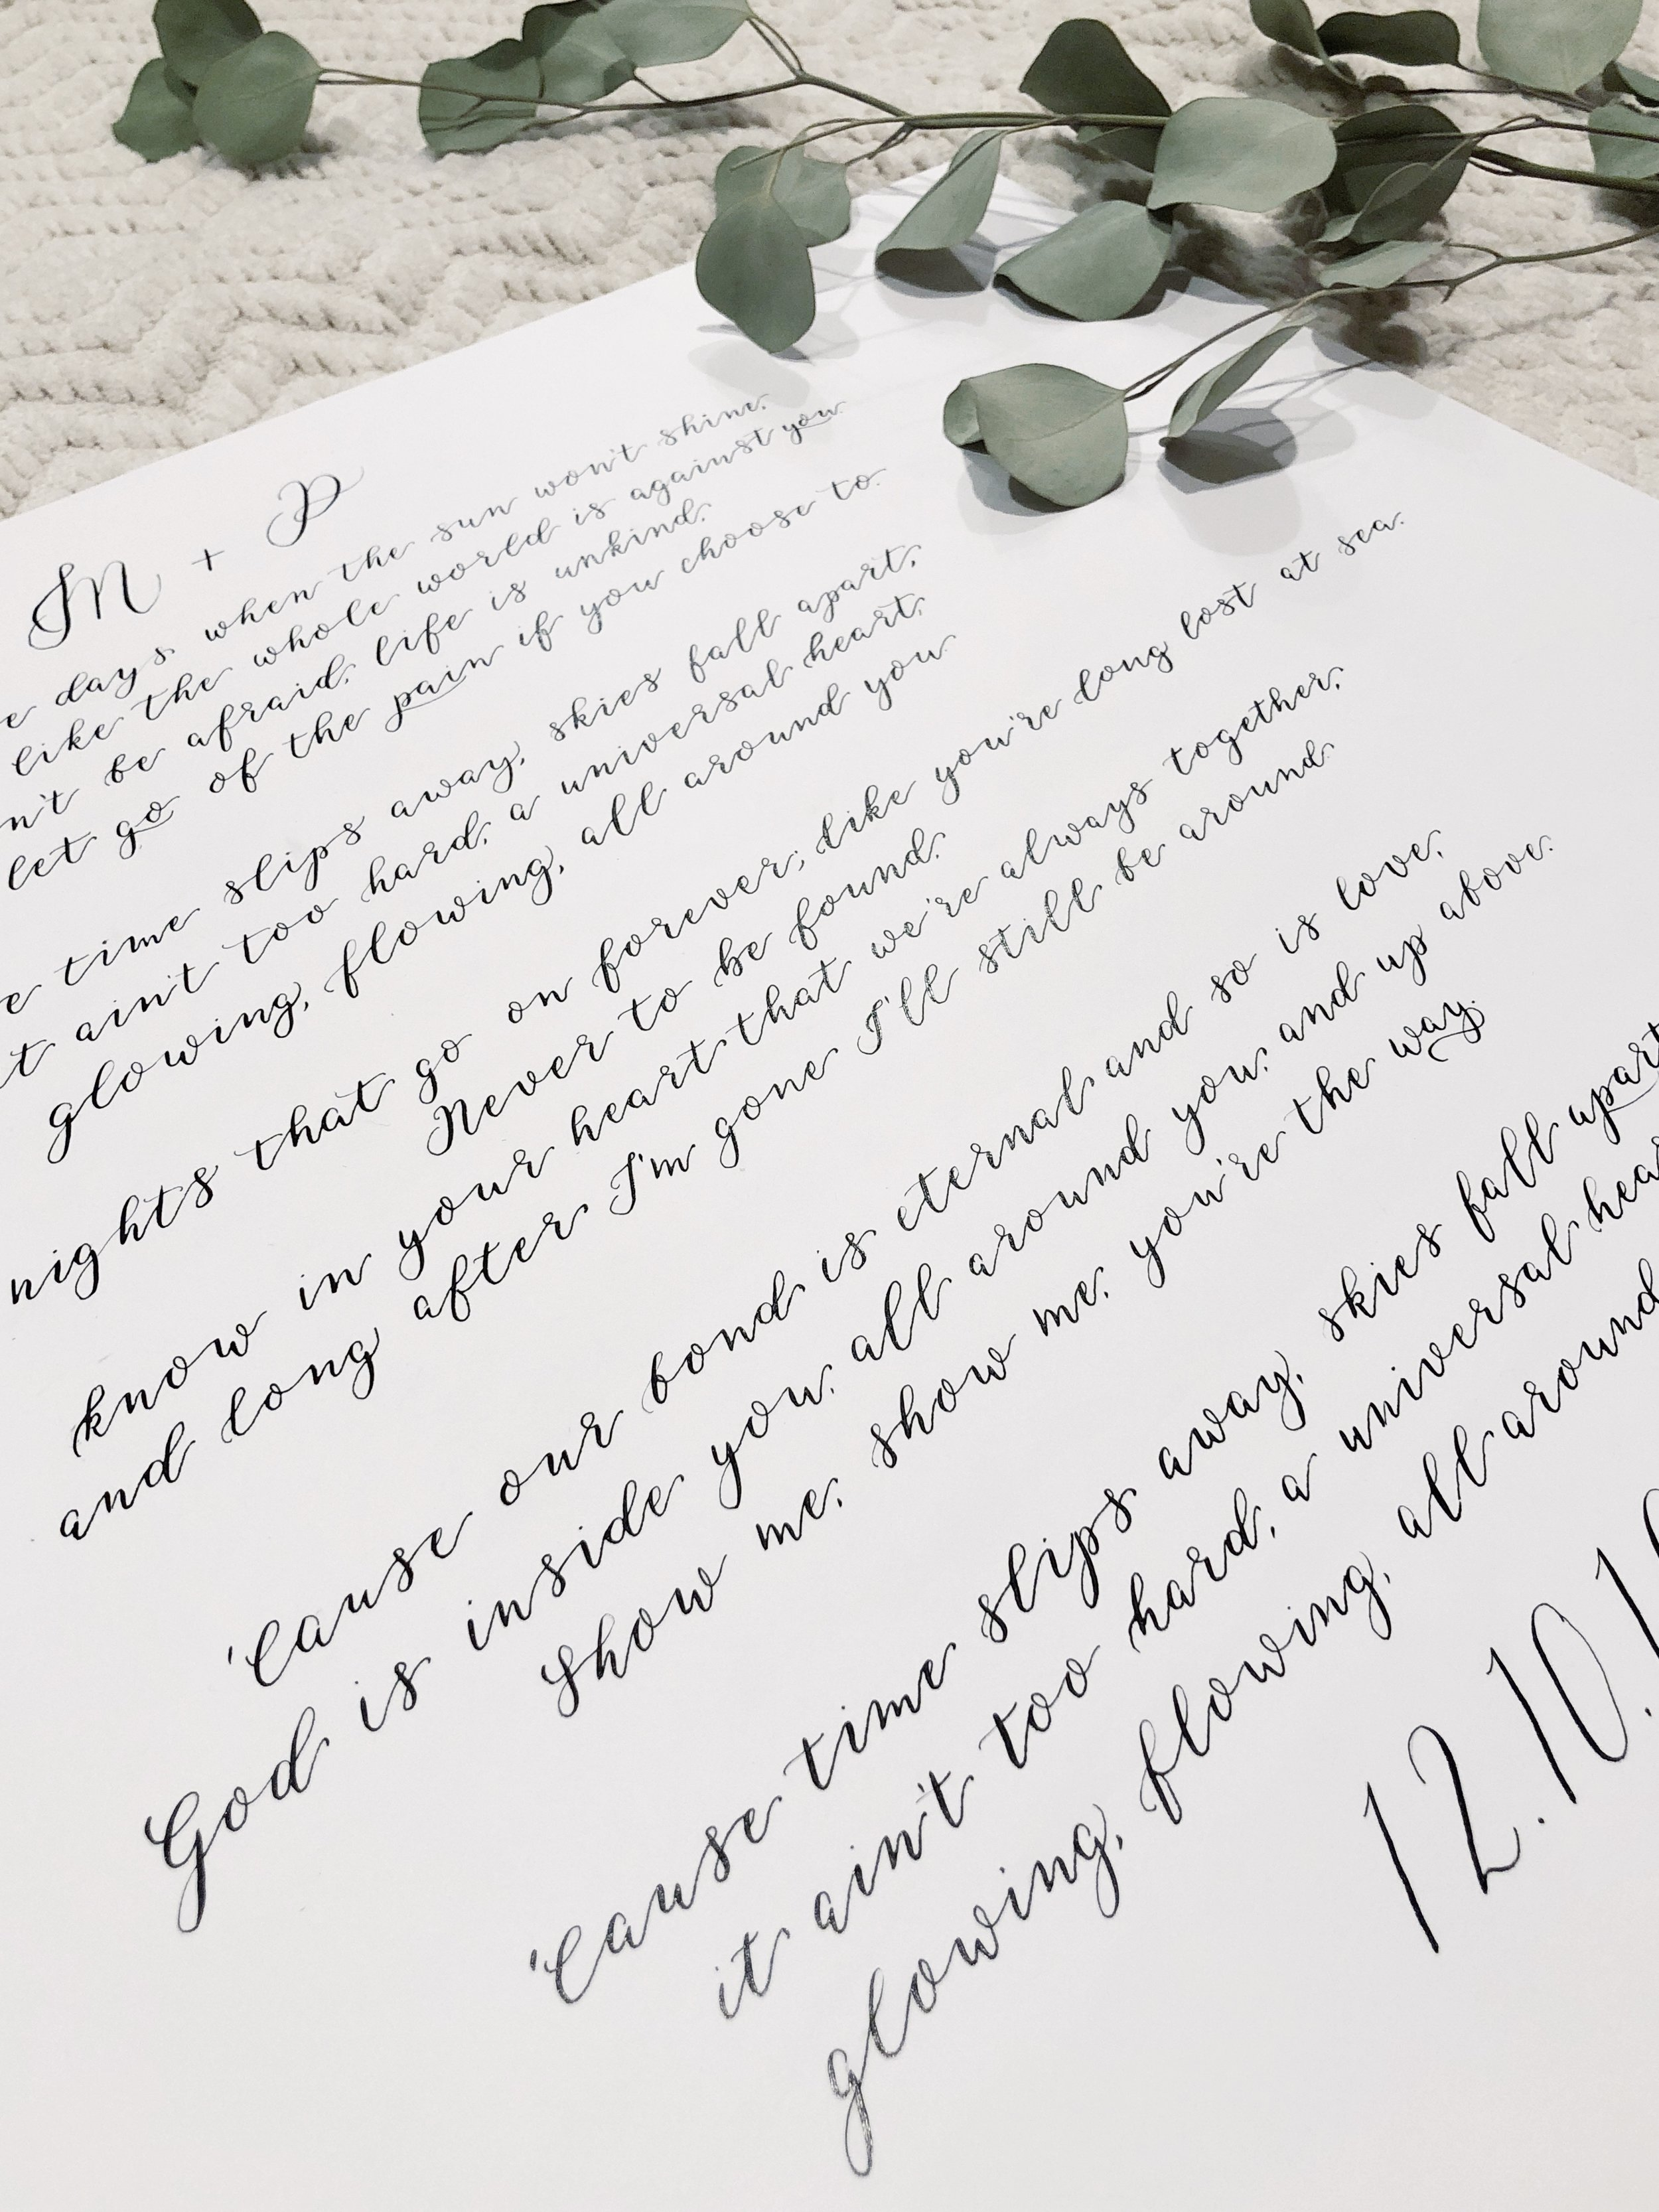 Central PA, York PA, JesSmith Designs, custom, wedding, invitations, bridal, announcements, save the date, baby, hanover, calligraphy, baltimore, wedding invitations, lancaster, gettysburg-12-04 04.03.25.jpg